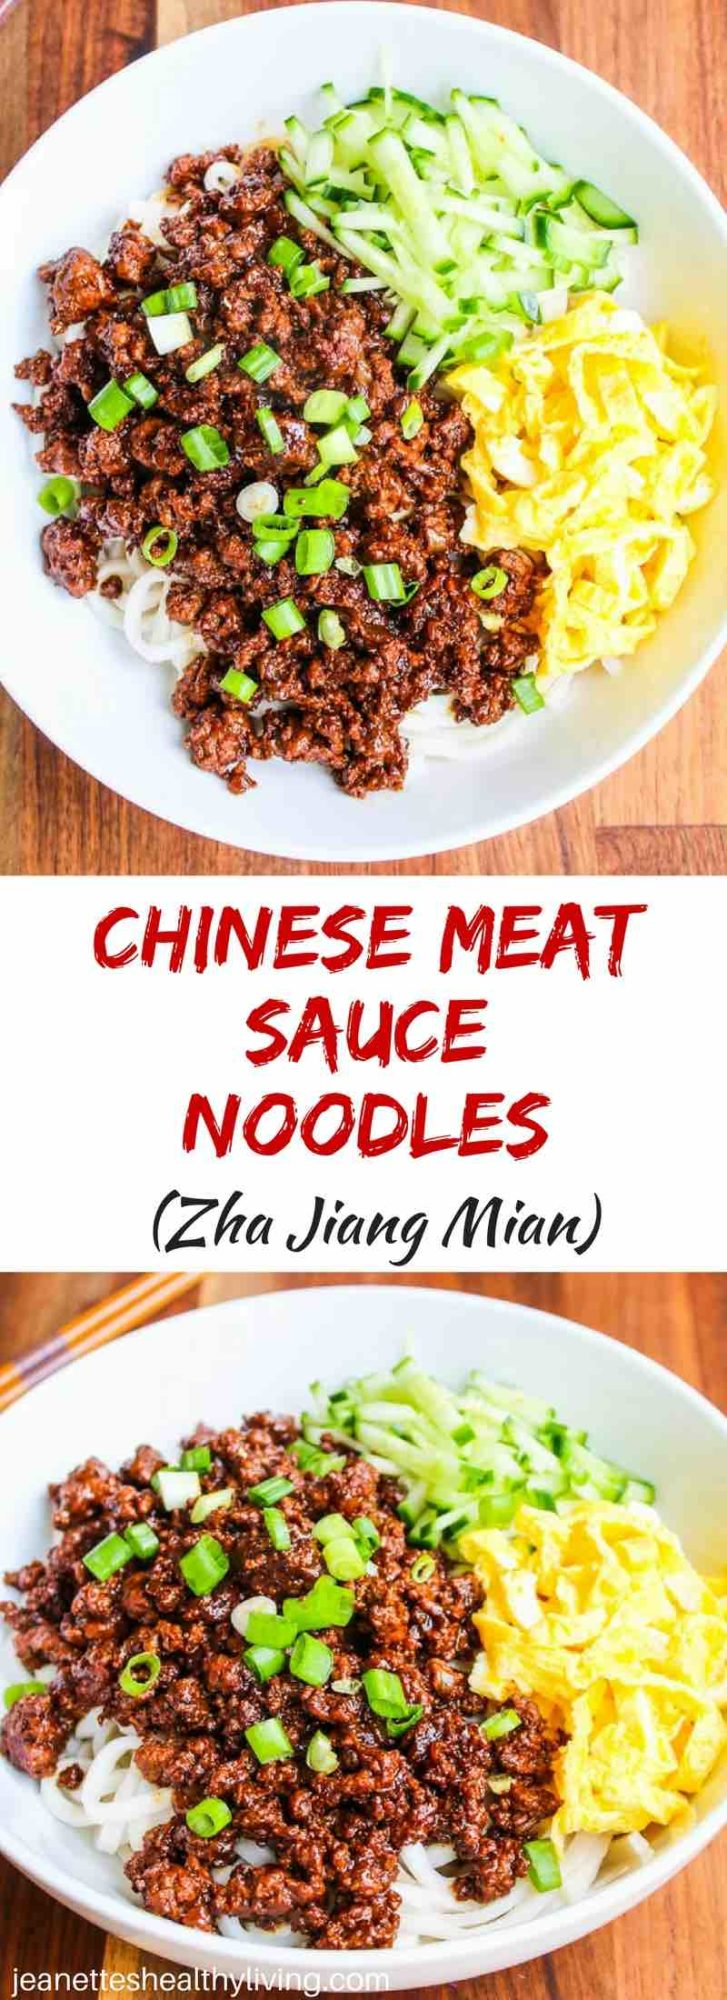 Zha Jiang Mian - easy, delicious Chinese meat sauce over noodles with cucumbers and shredded egg omelet